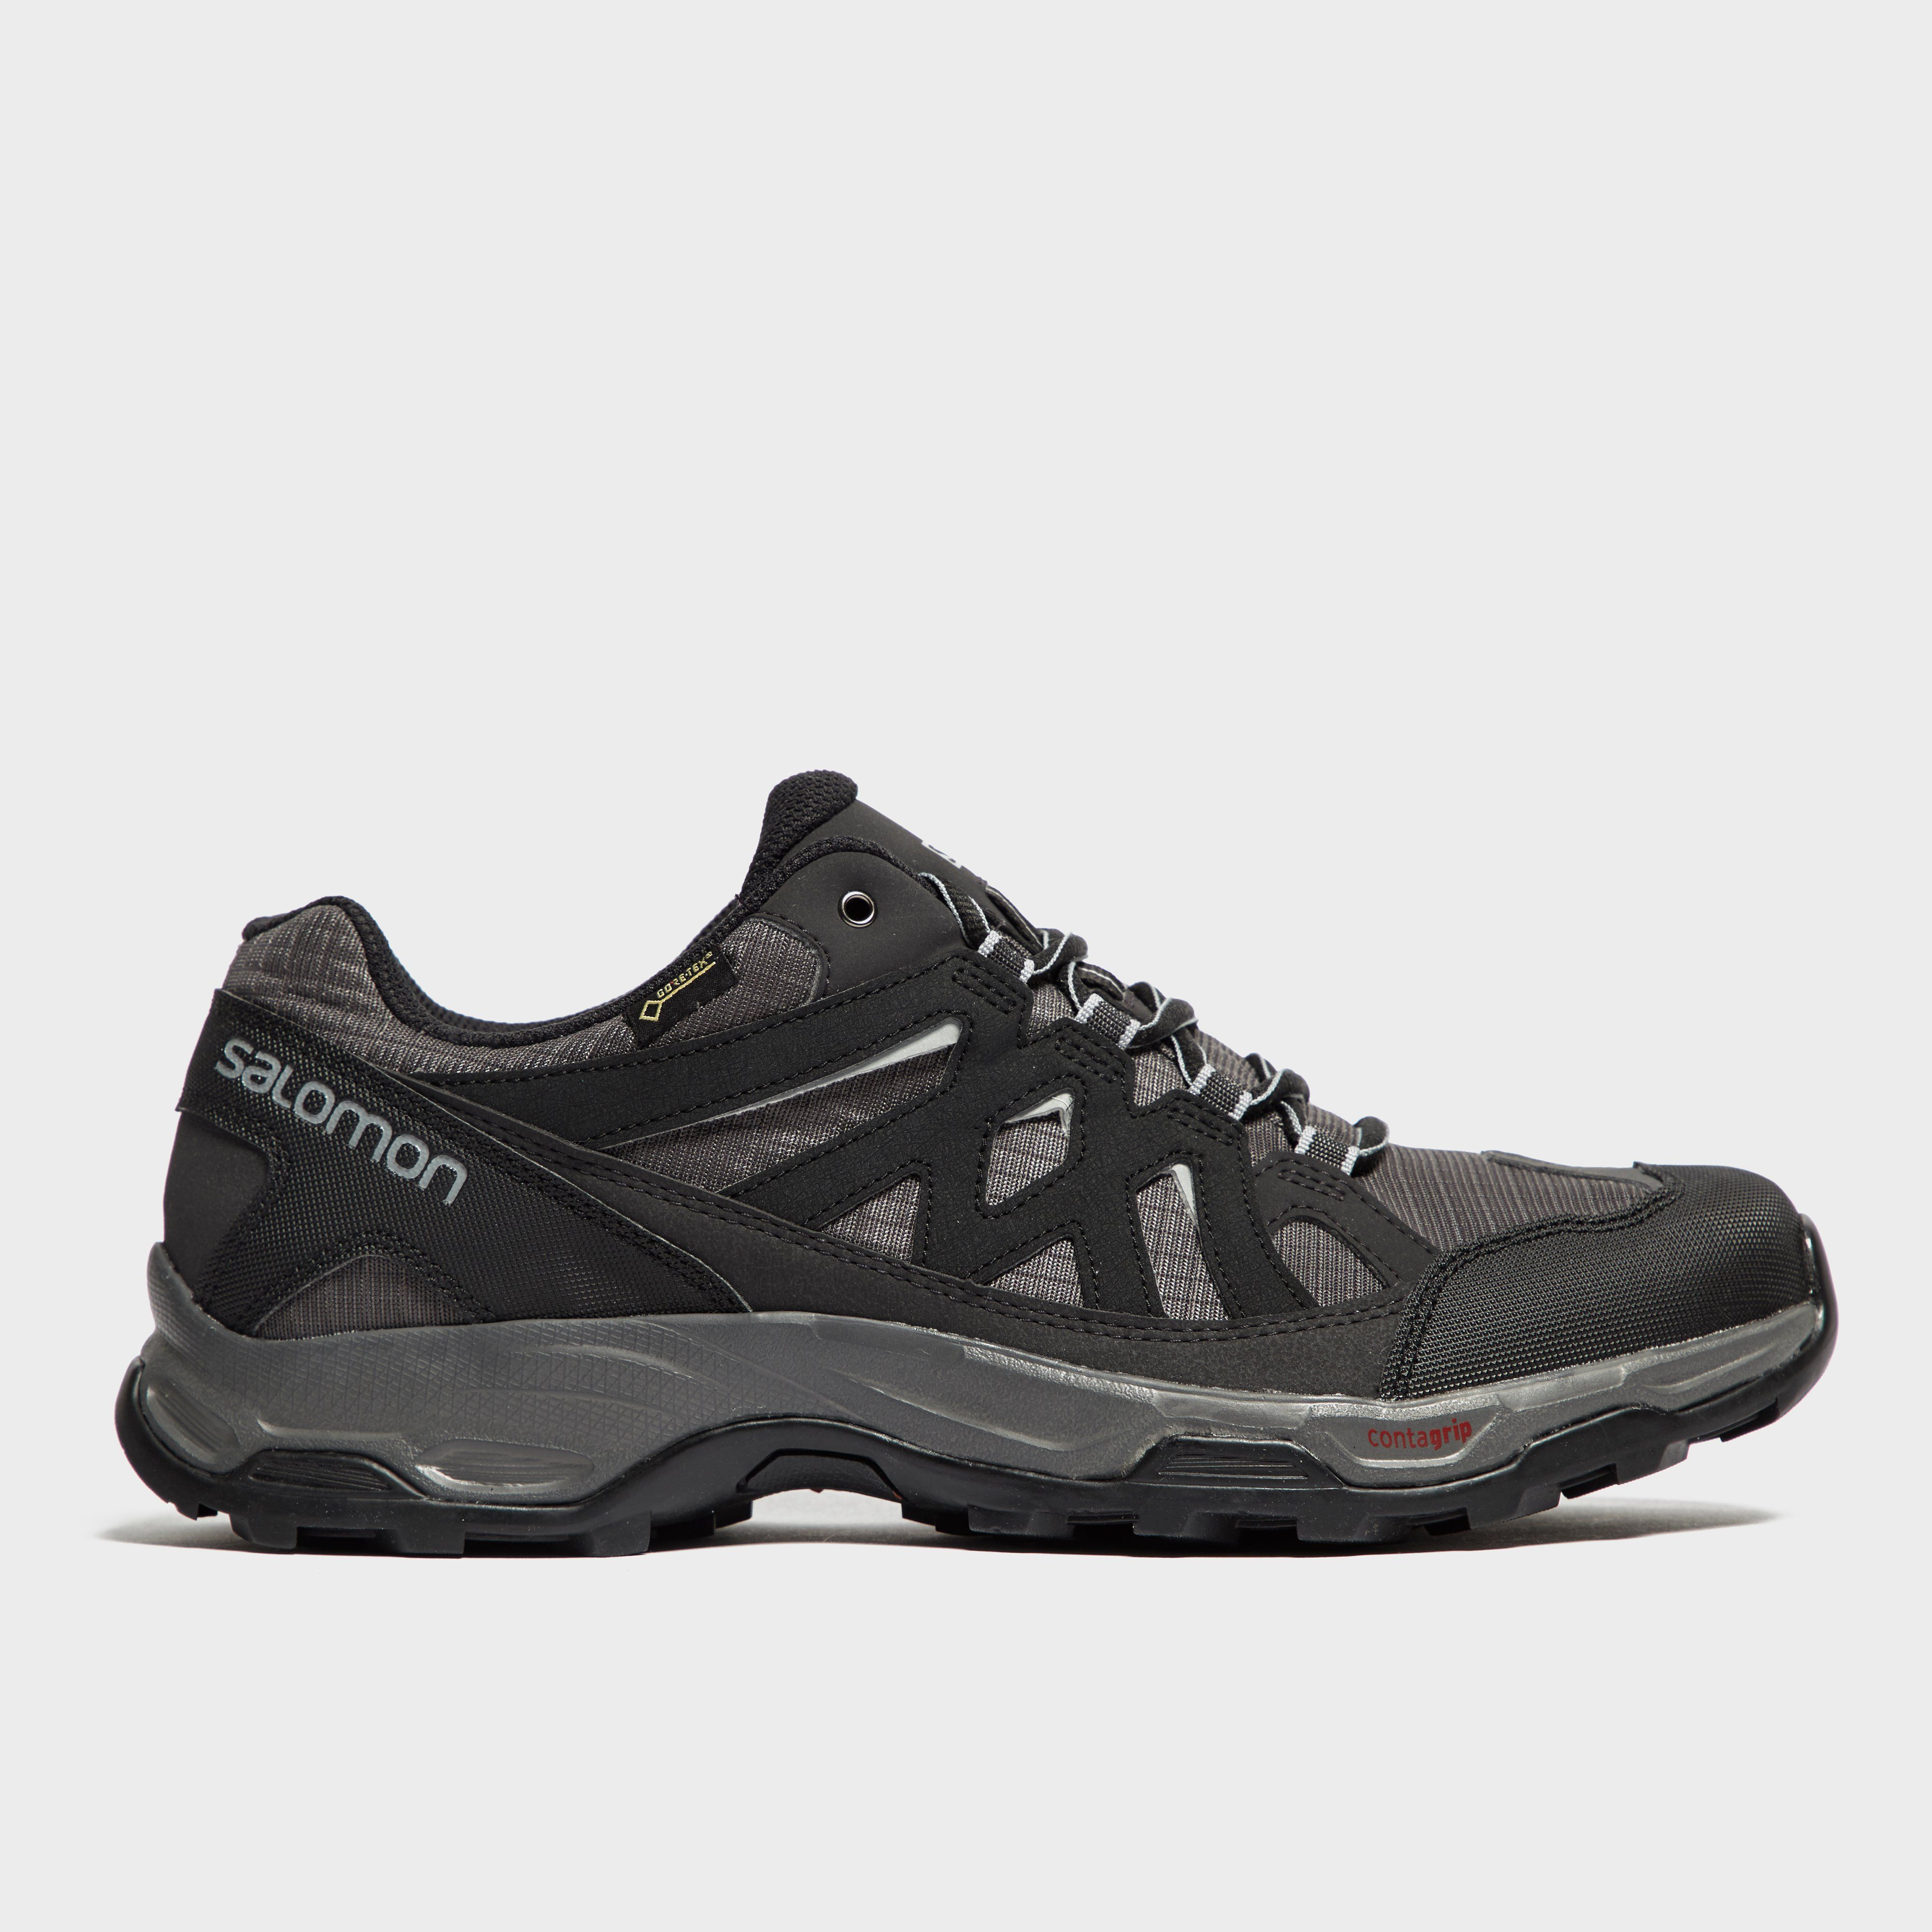 SALOMON Men's Effect GORE-TEX® Shoes